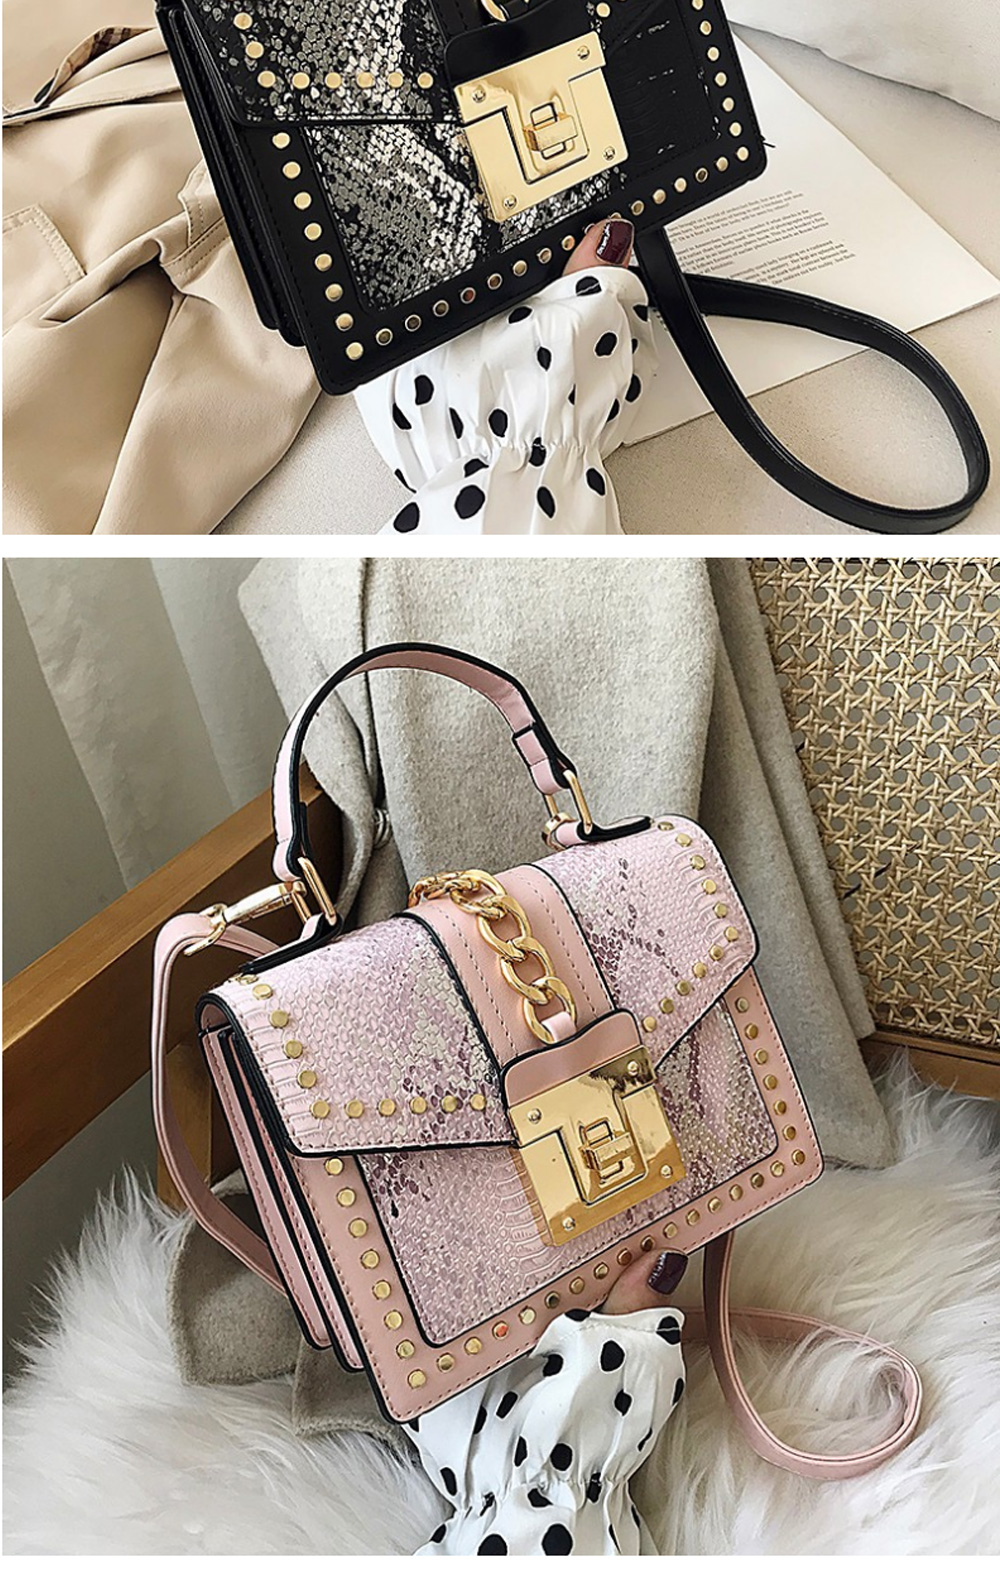 Fashion Snake Pattern Portable Small Female Bag 2020 New European And American Personality Atmospheric Messenger Shoulder Bag Wild Small Square Bag  1